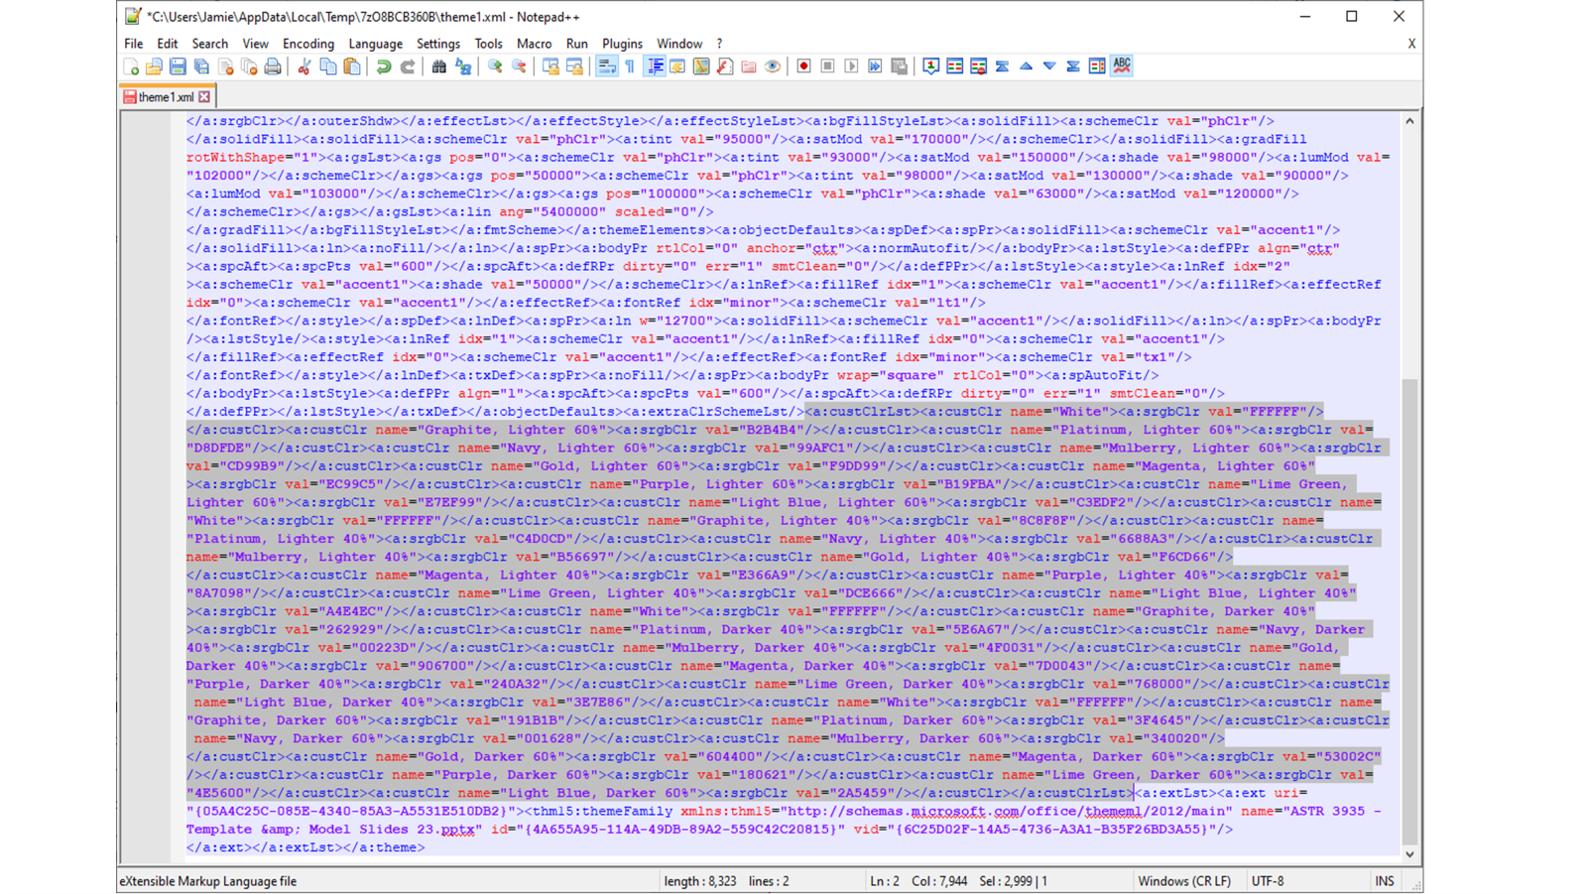 Screenshot of XML with a large highlighted section.